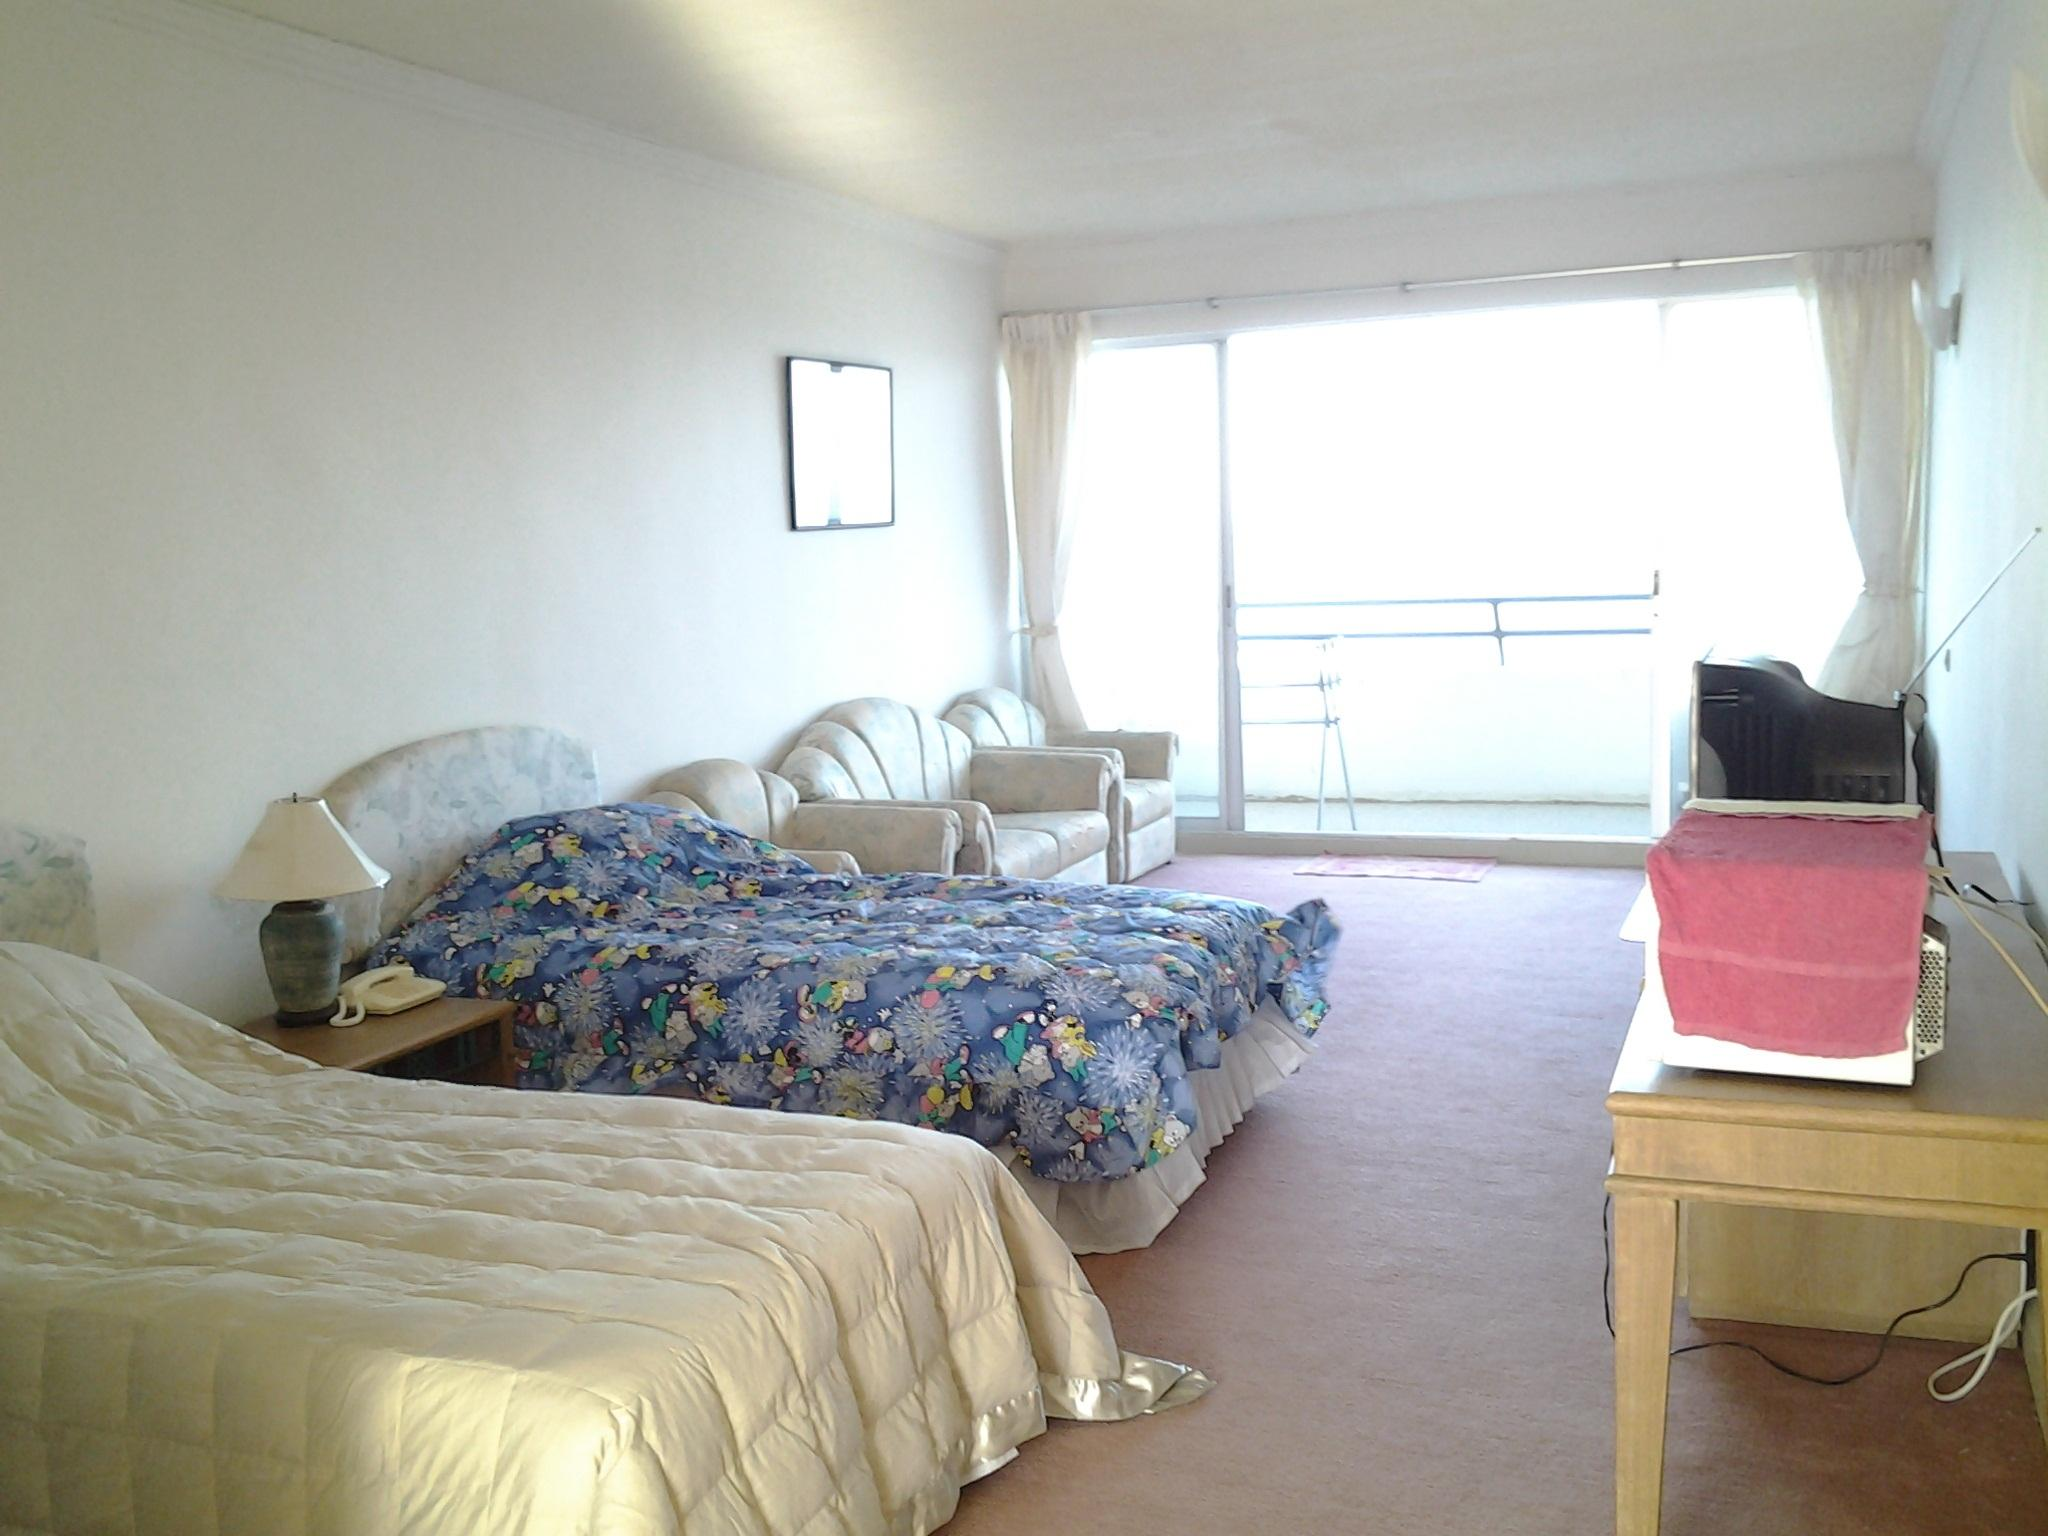 Condo Milford Paradise Room 200 - Hotels and Accommodation in Thailand, Asia